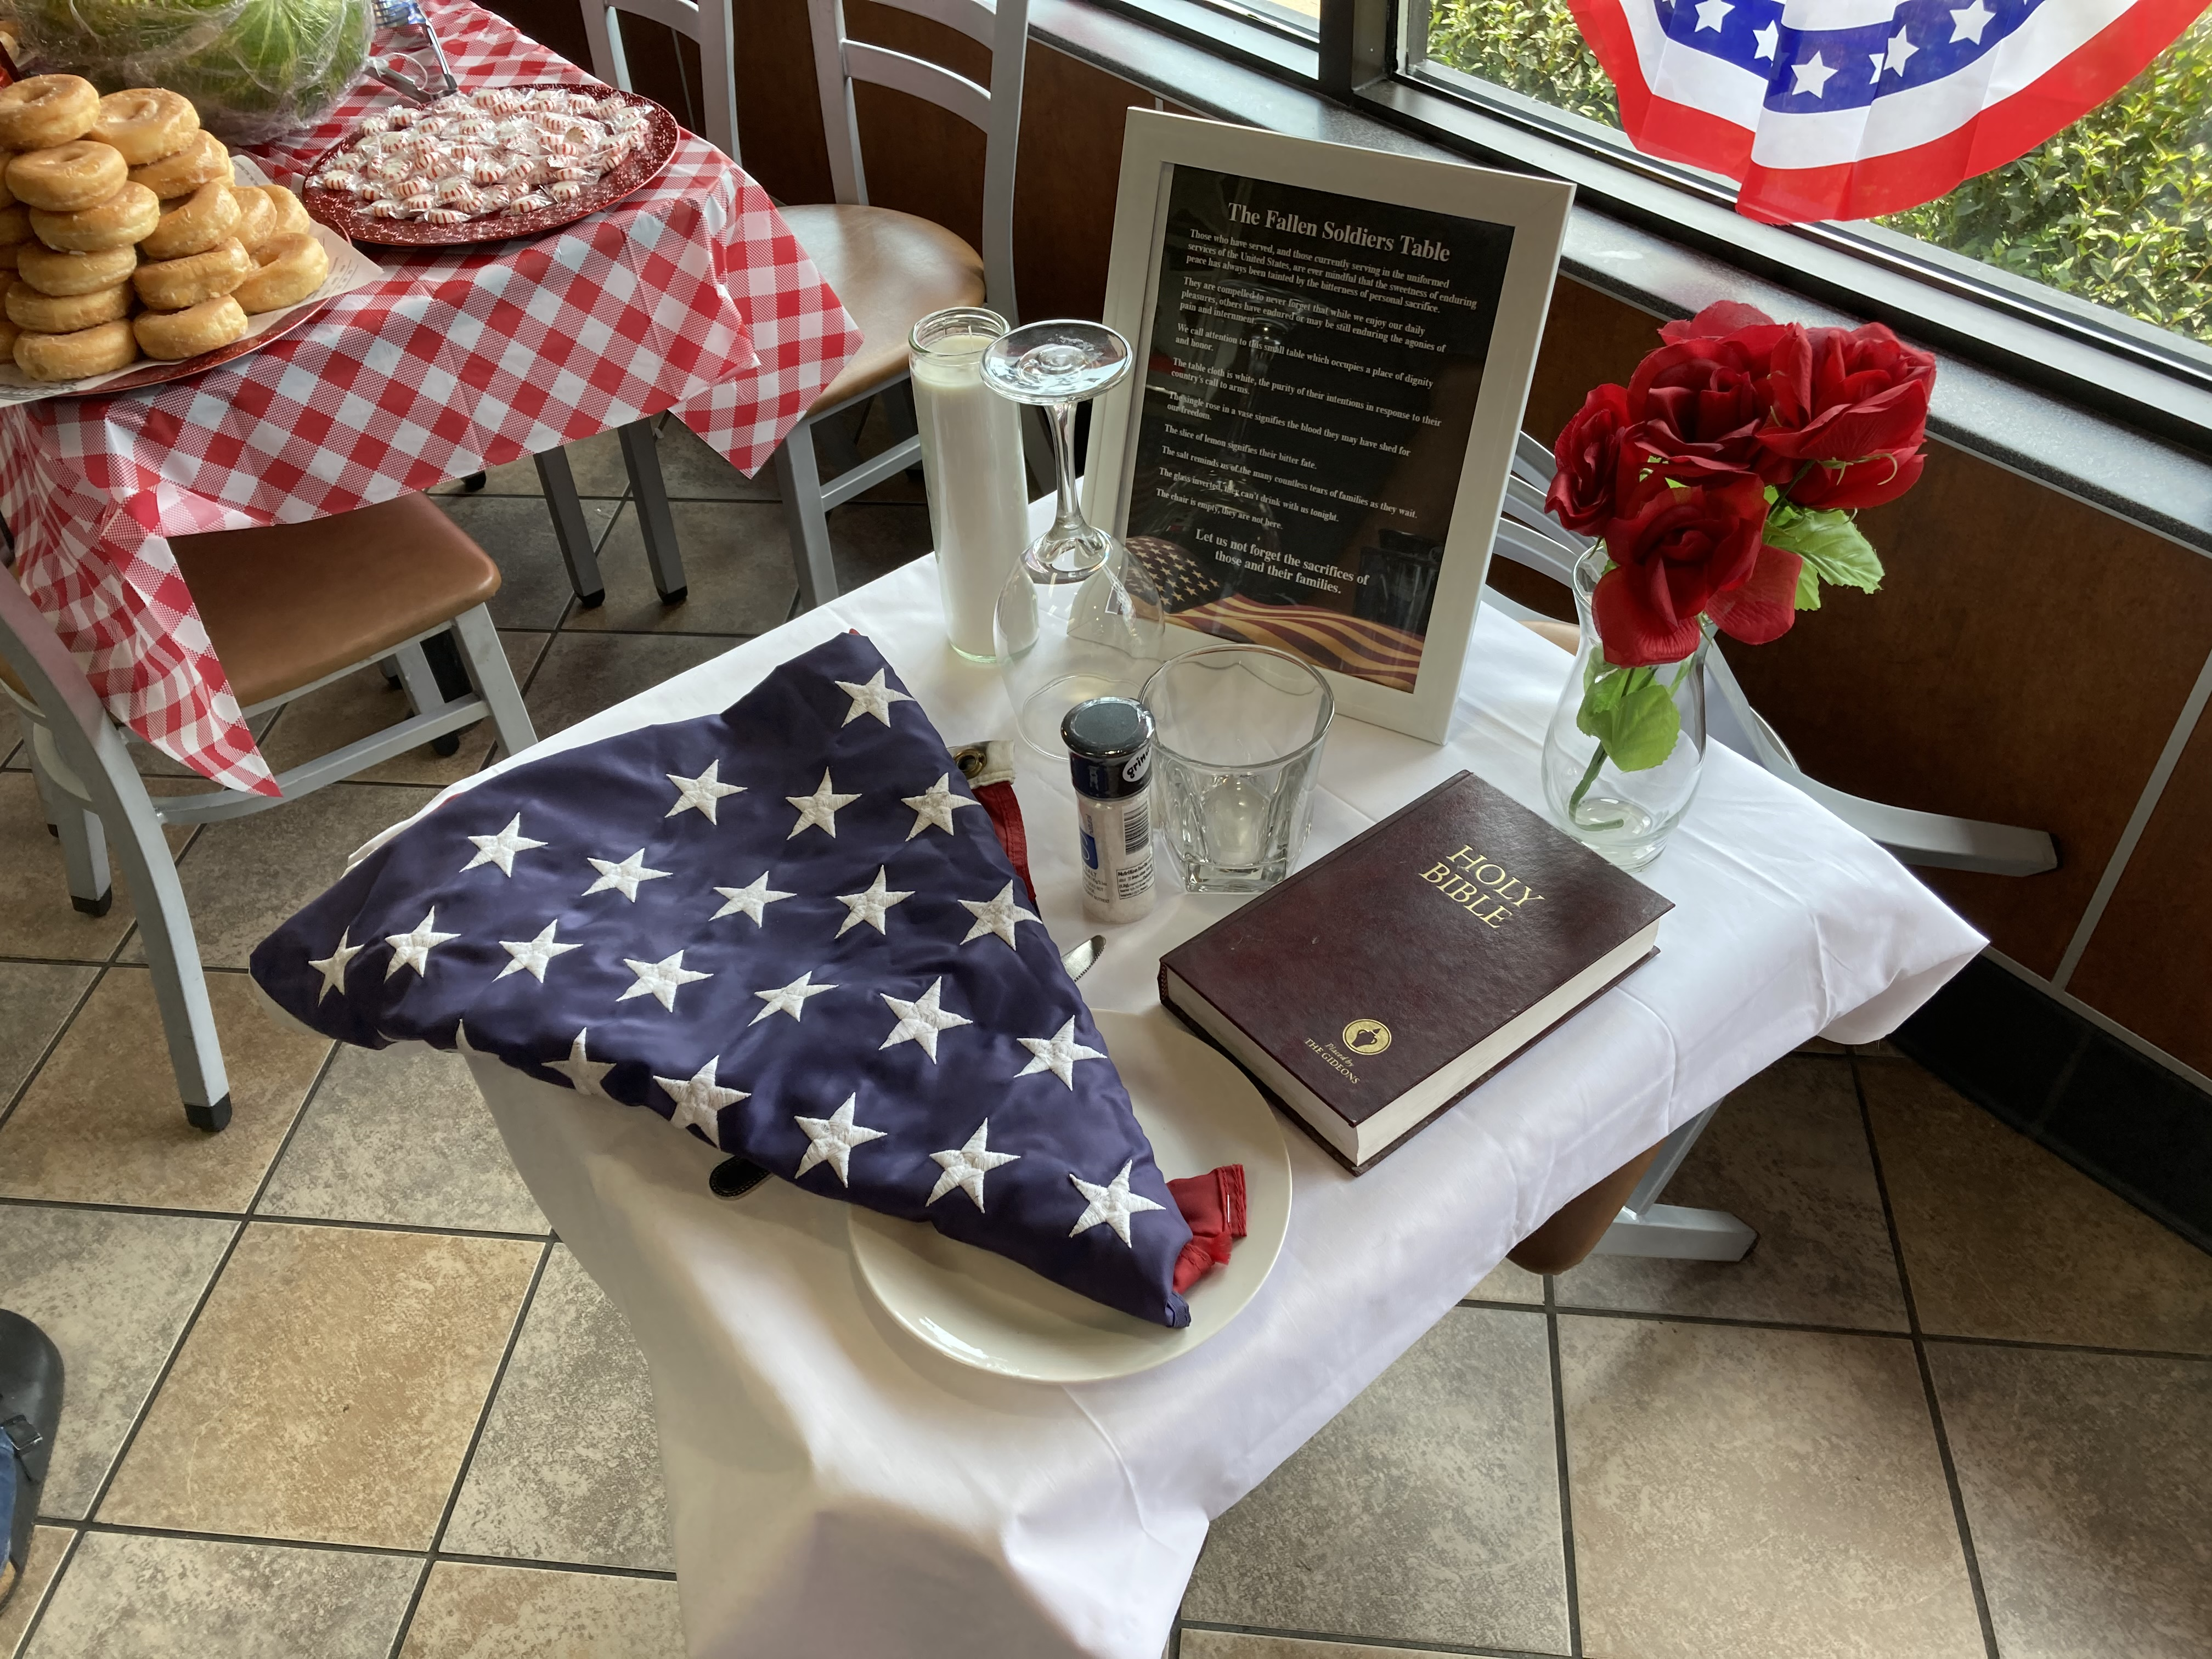 small table with Bible, flowers and an American flag